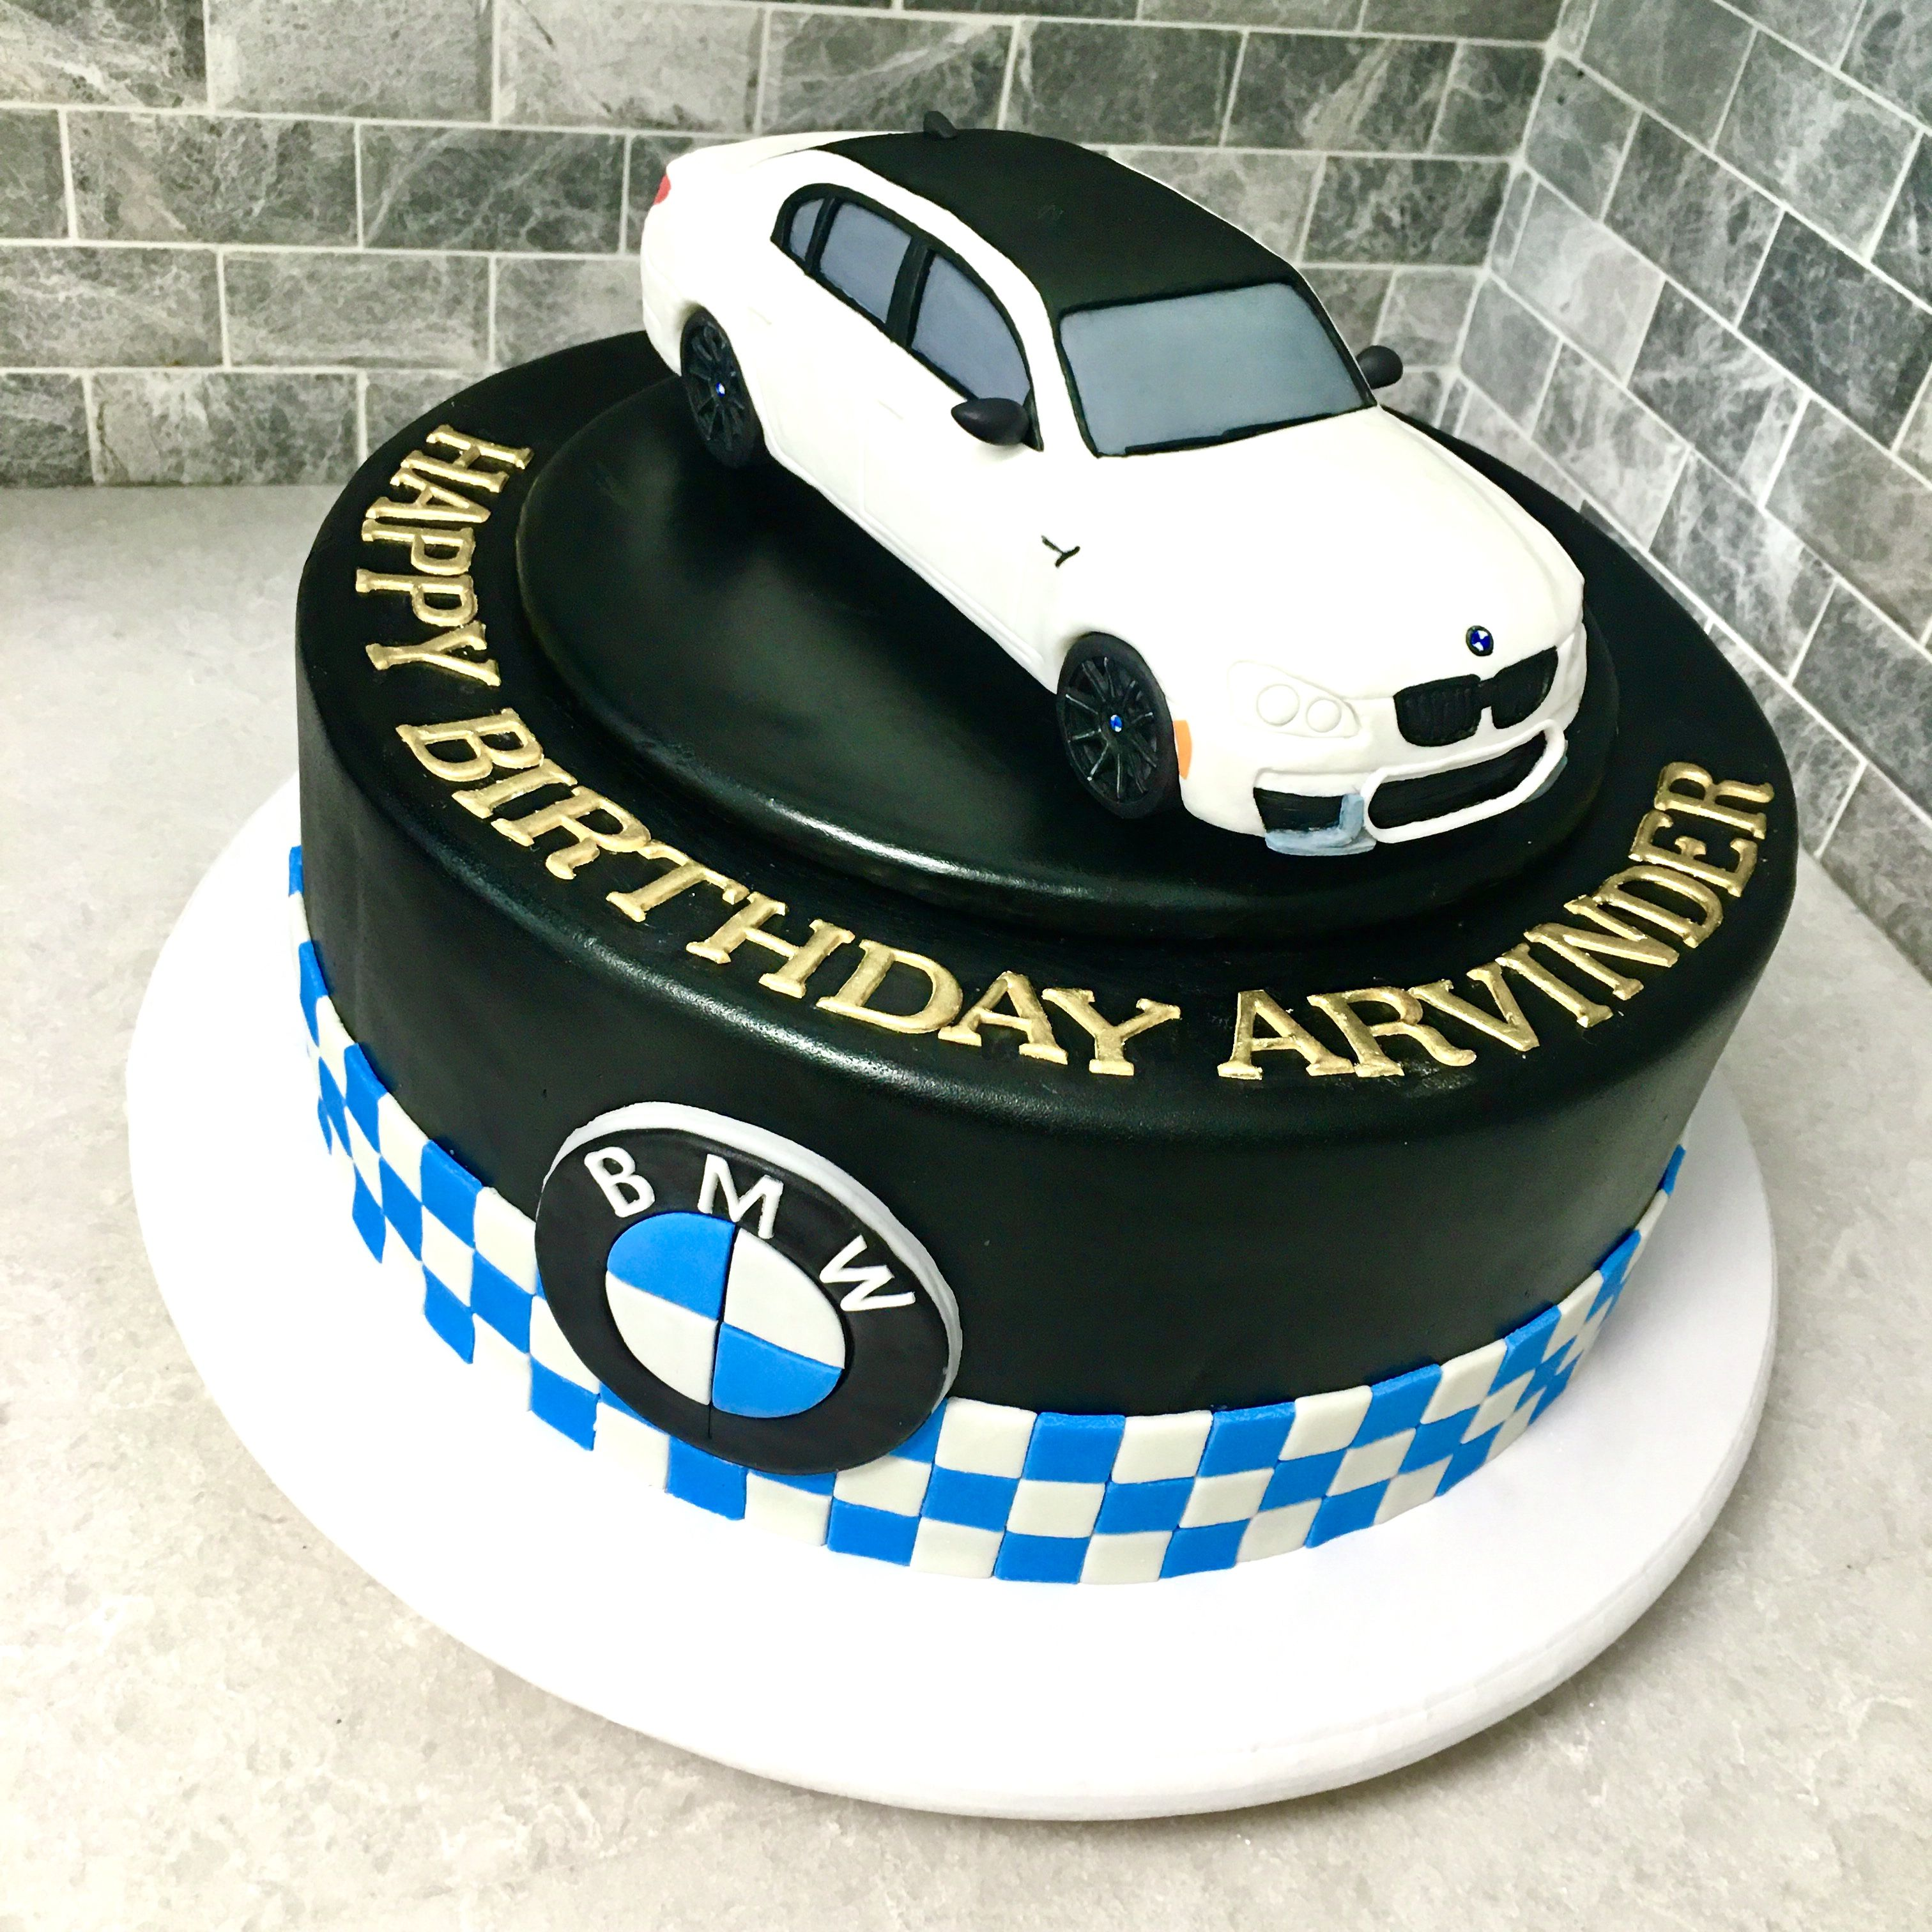 Carve the contours of the sheet cake to give it an aerodynamic feel. Bmw Cake Cake Designs For Kids Cars Birthday Cake Cars Cake Design